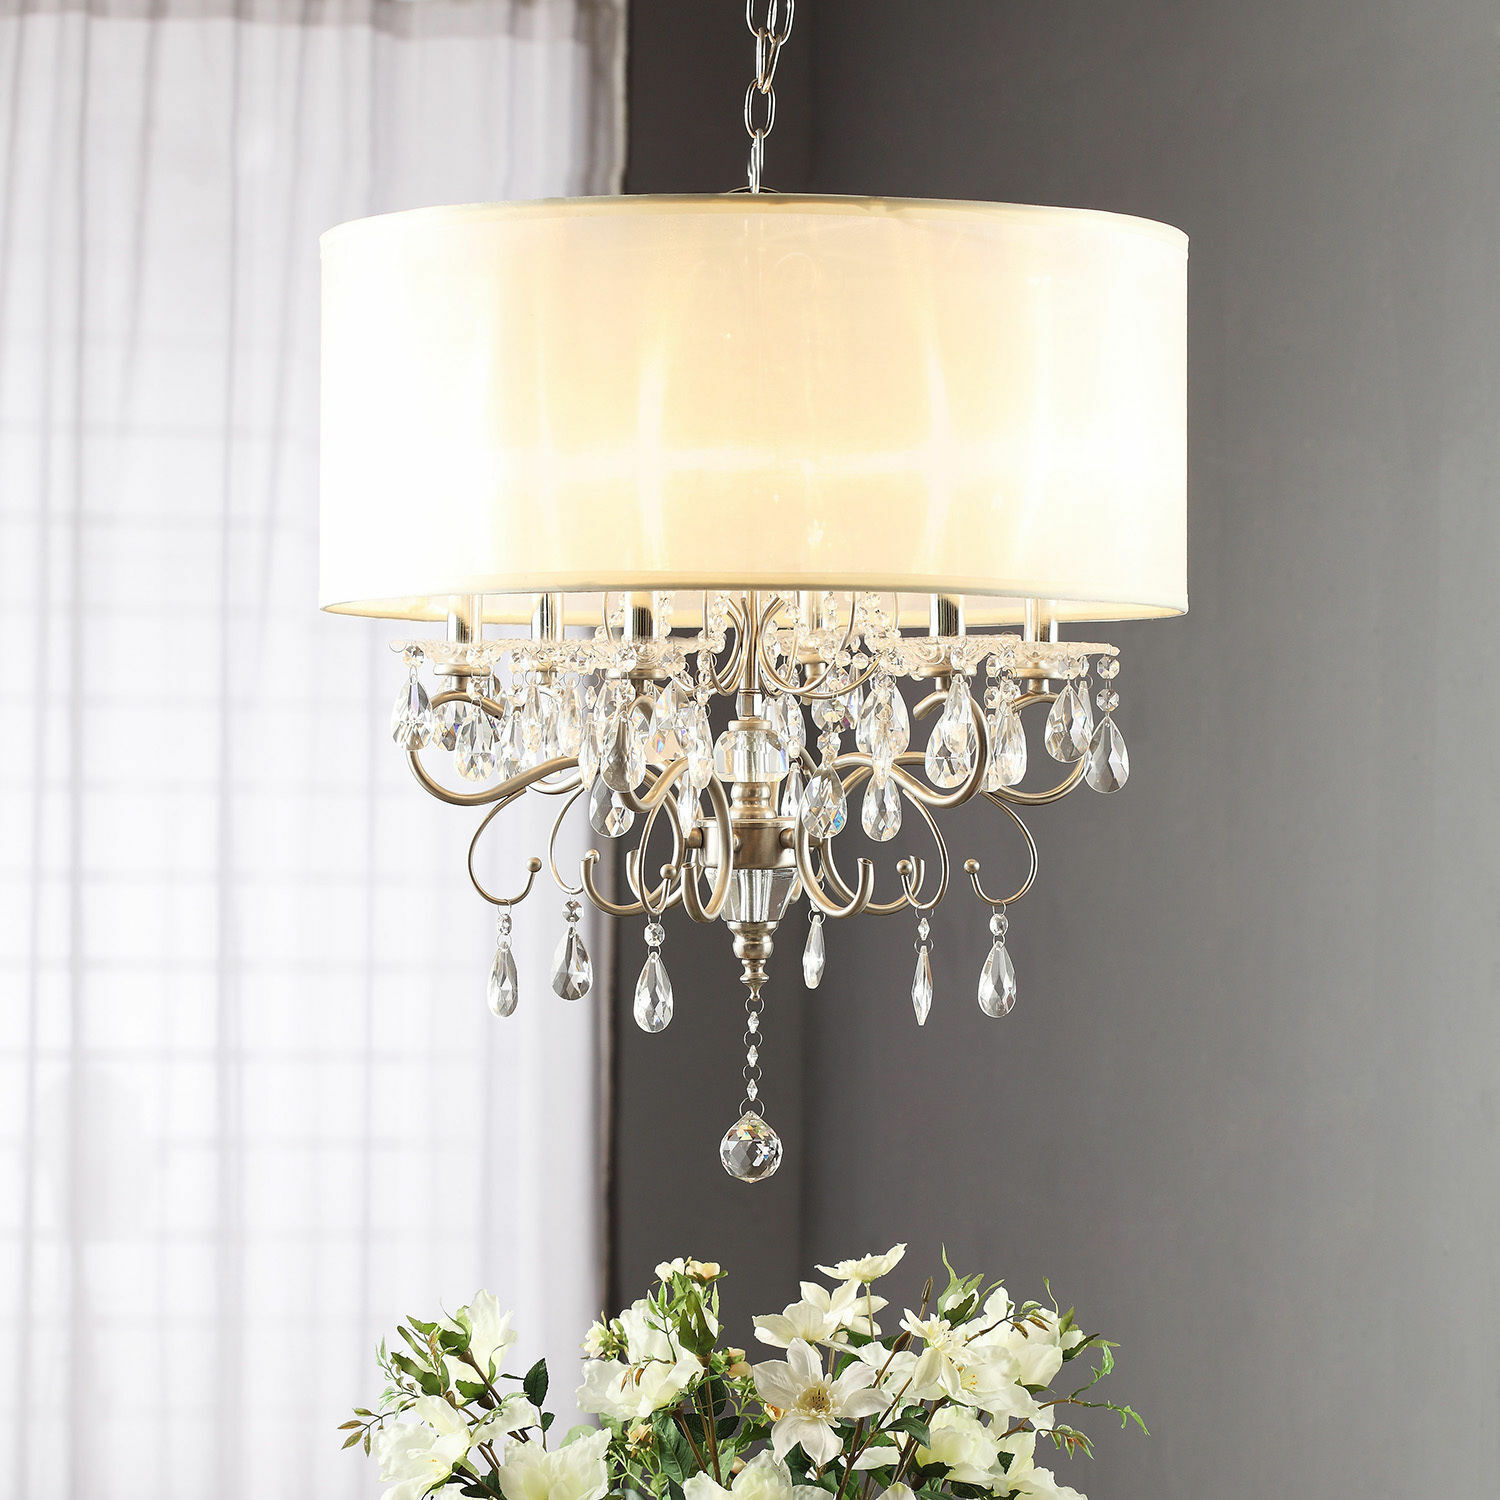 Crystal Chandelier With Drum Shade: Top 10 Chandeliers